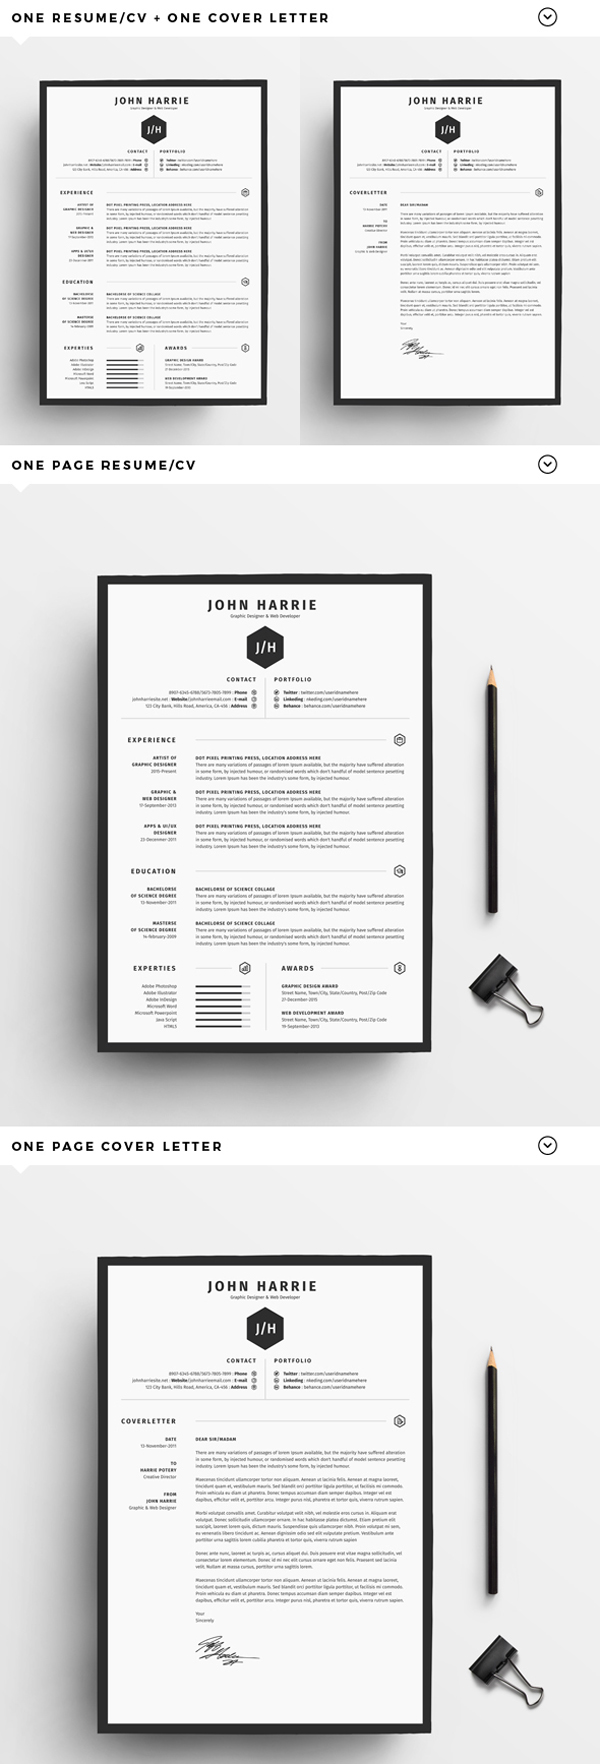 50 Free Resume Templates: Best Of 2018 -  15